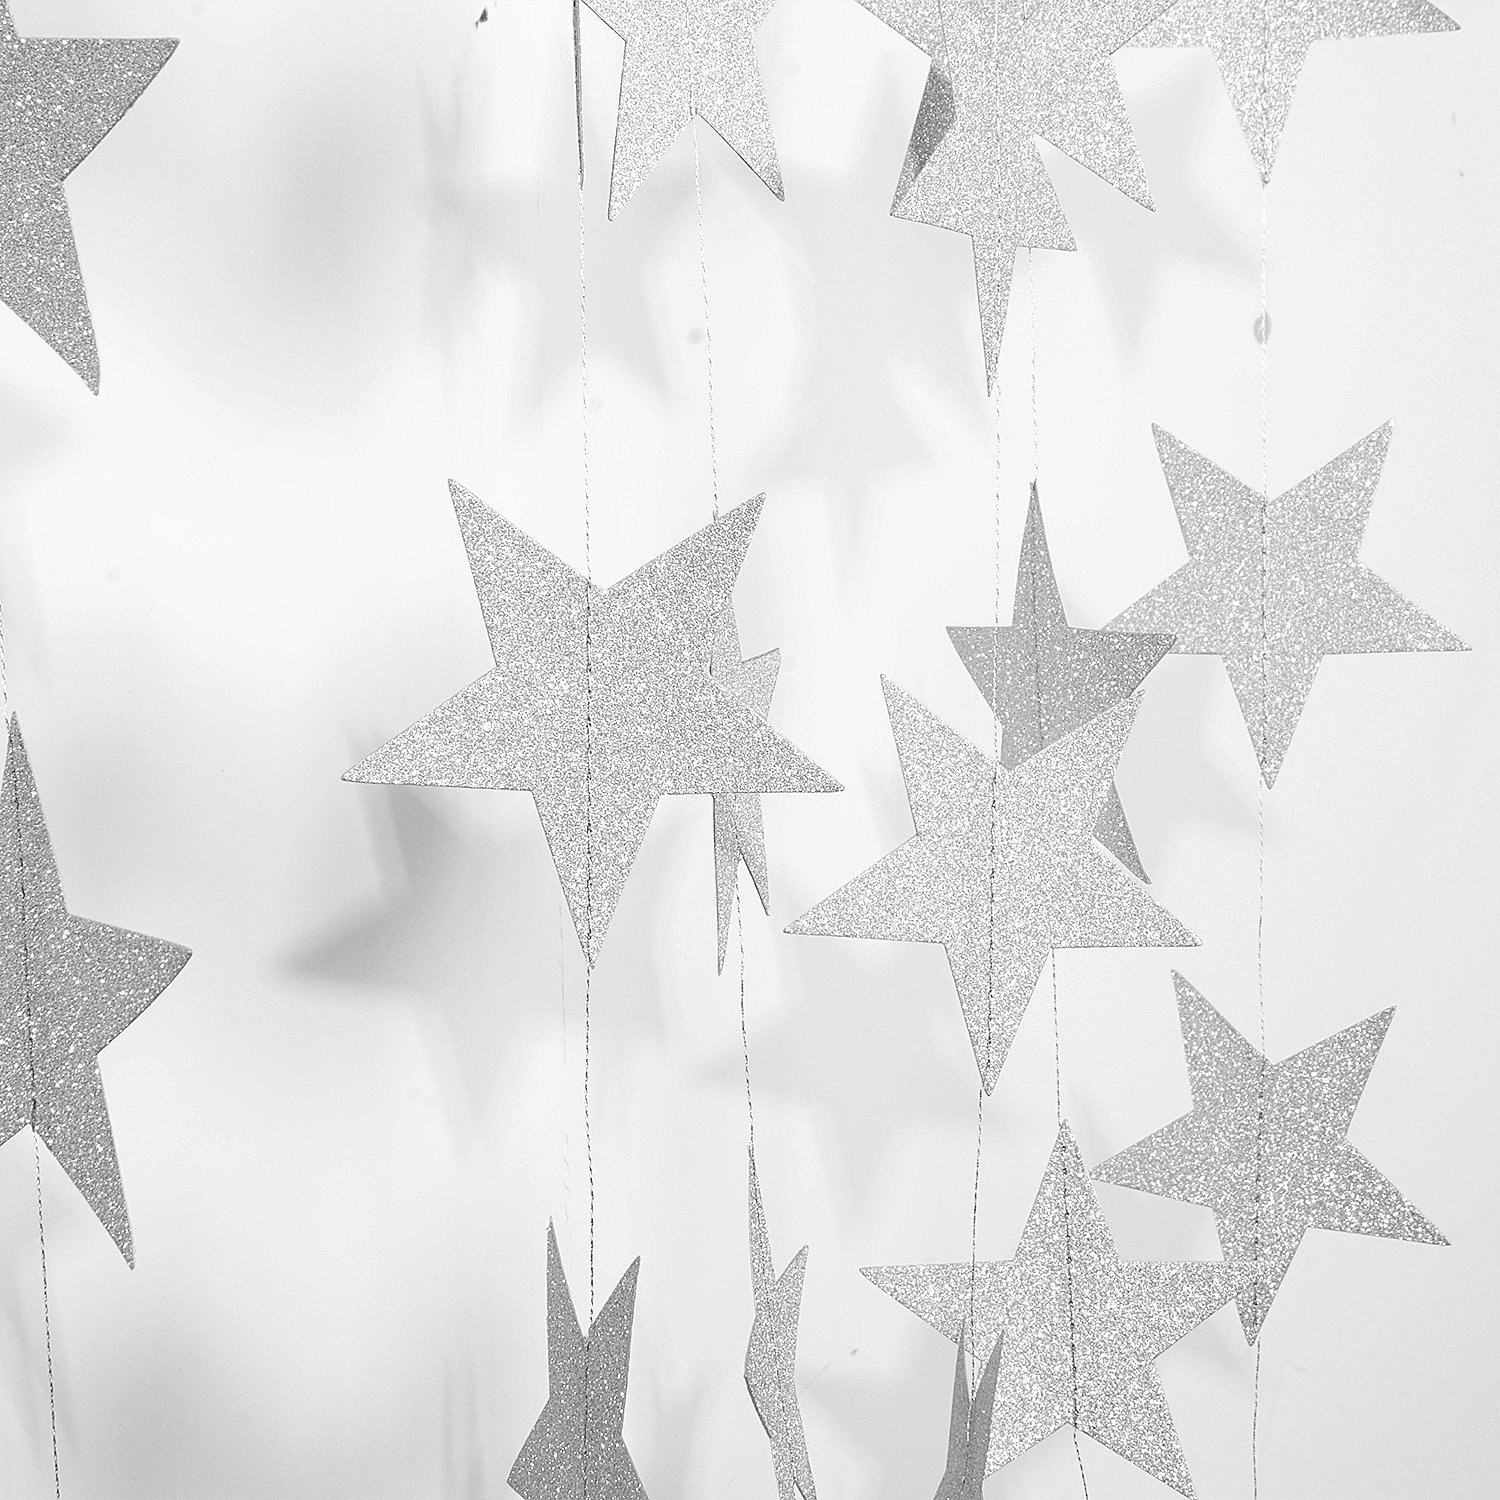 Takefuns Silver Star Garland Silvery Christmas galaxy banner,Twinkle Little Star String garland Christmas garland for Wedding Birthday Party Baby Shower Decorations(4 inch in Diameter, 13 Feet)